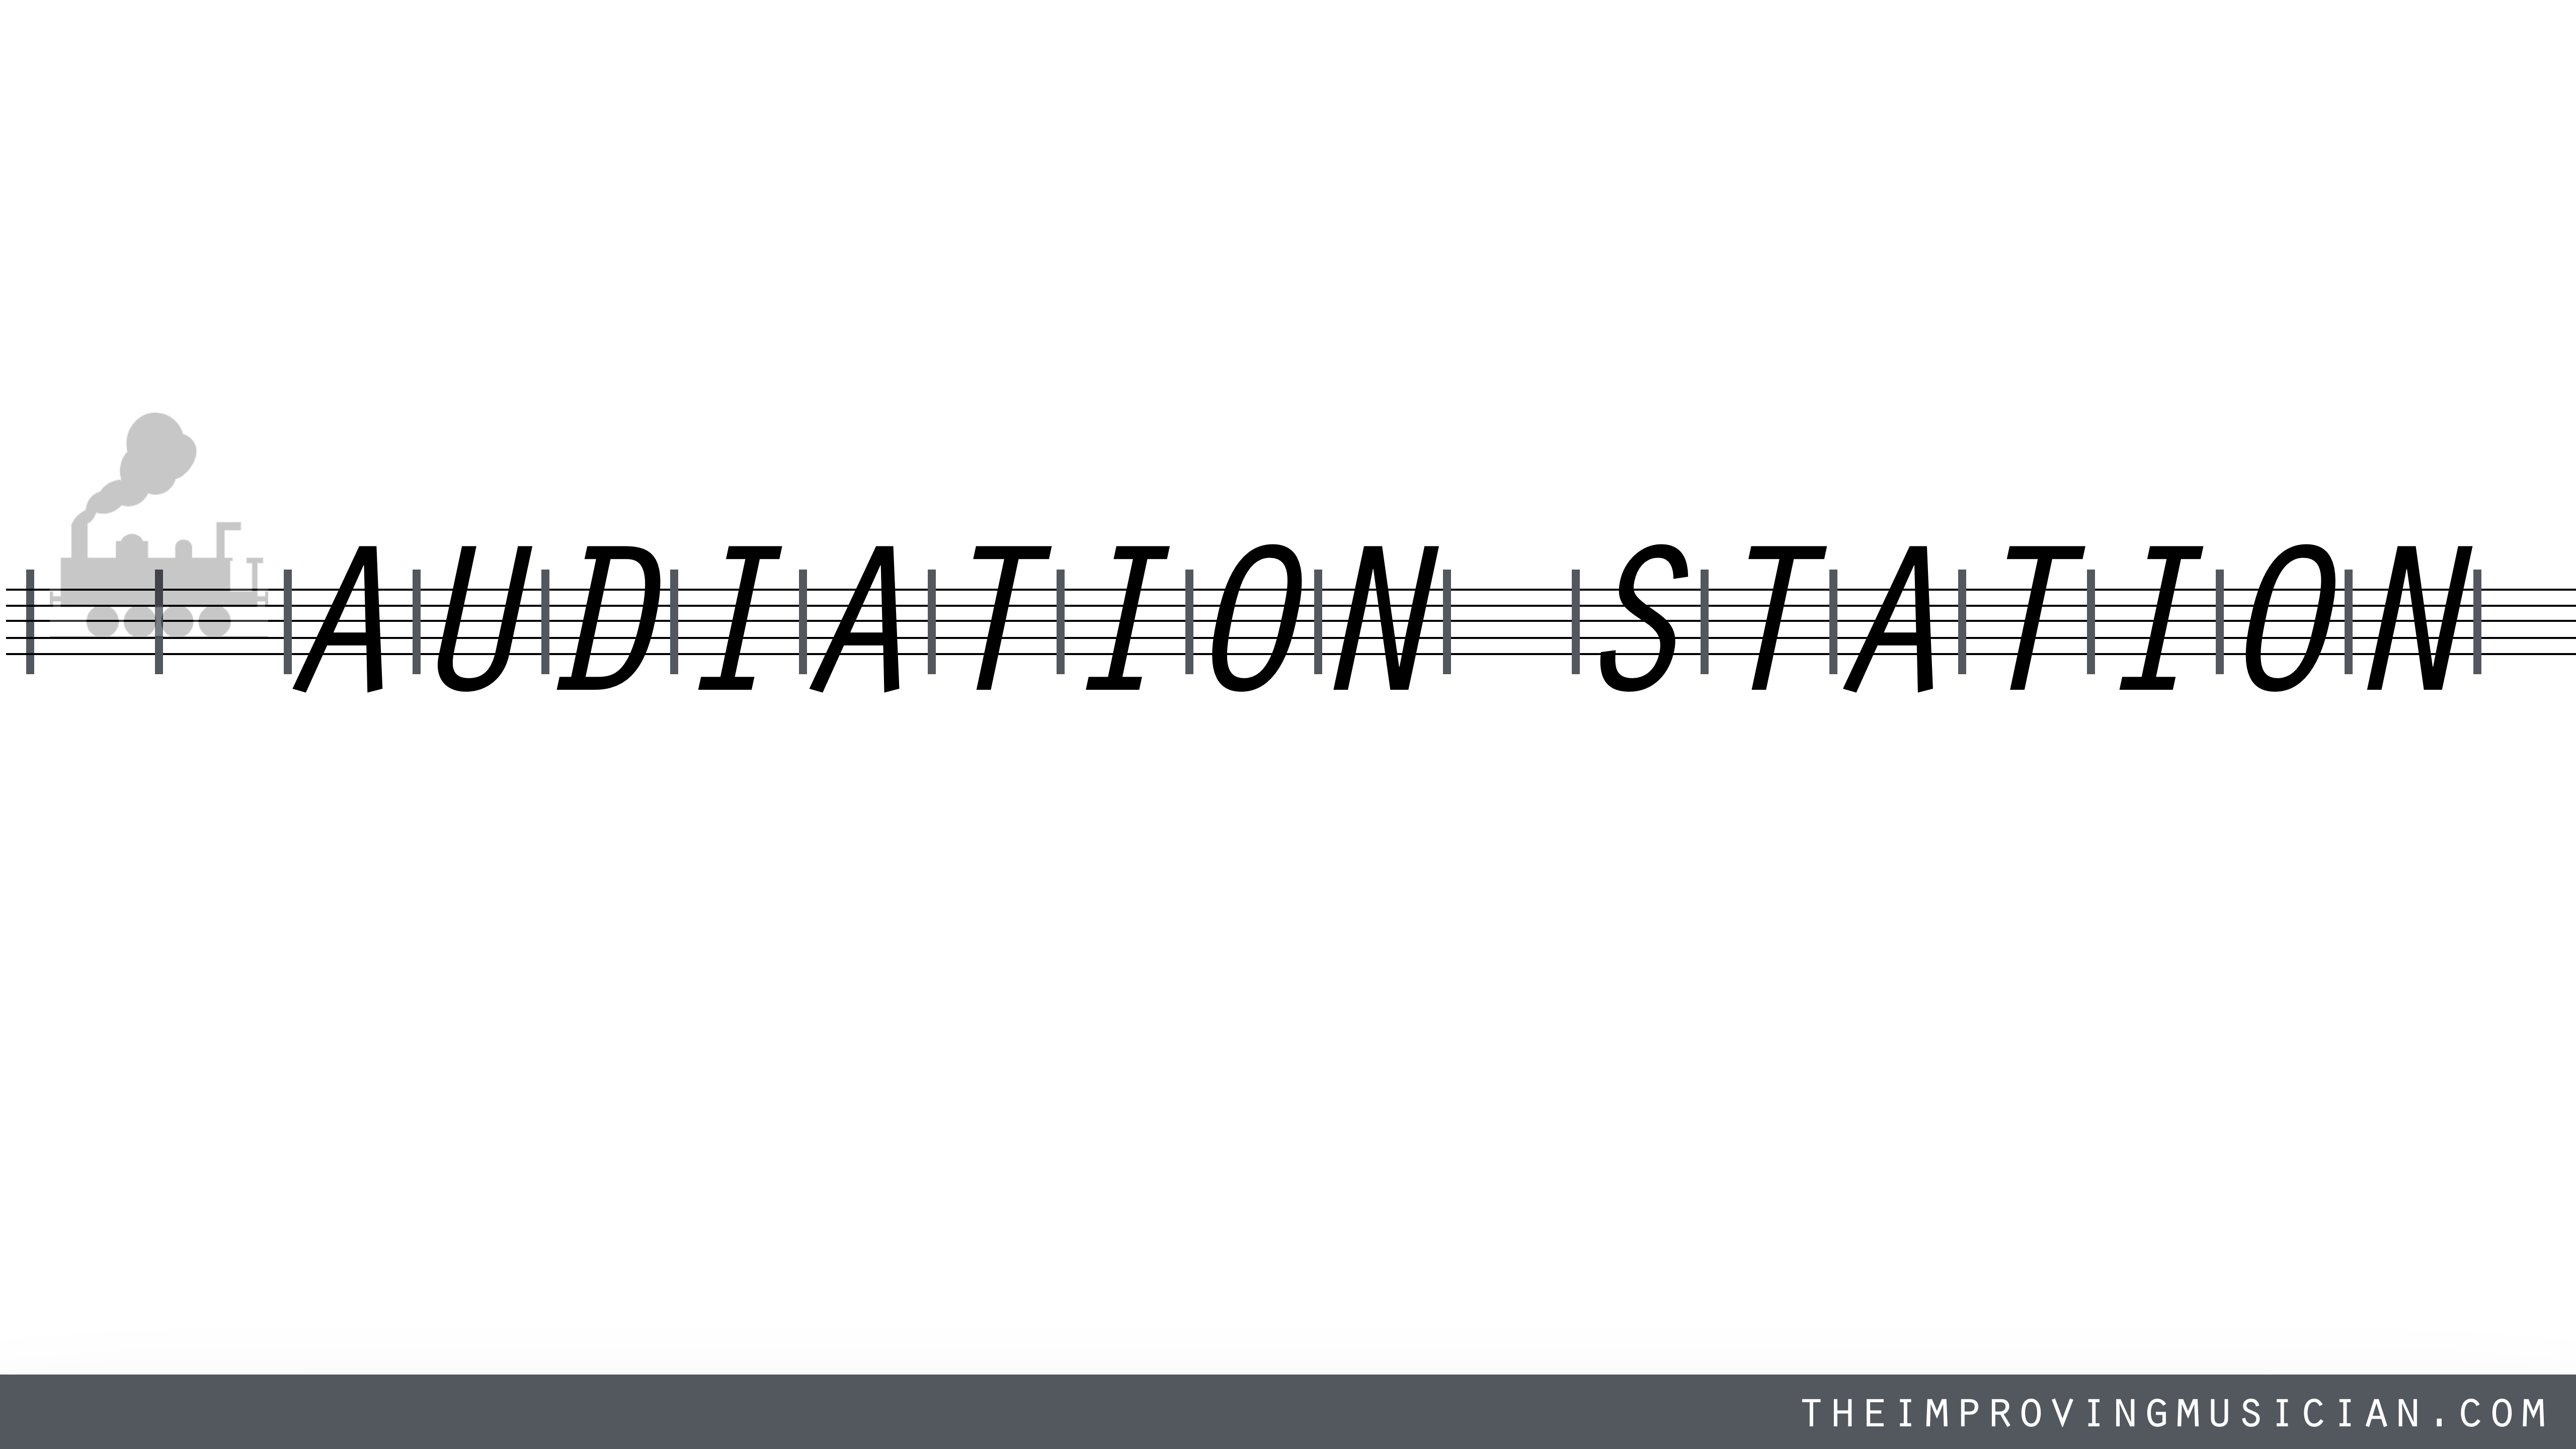 Audiation Station Is Here!